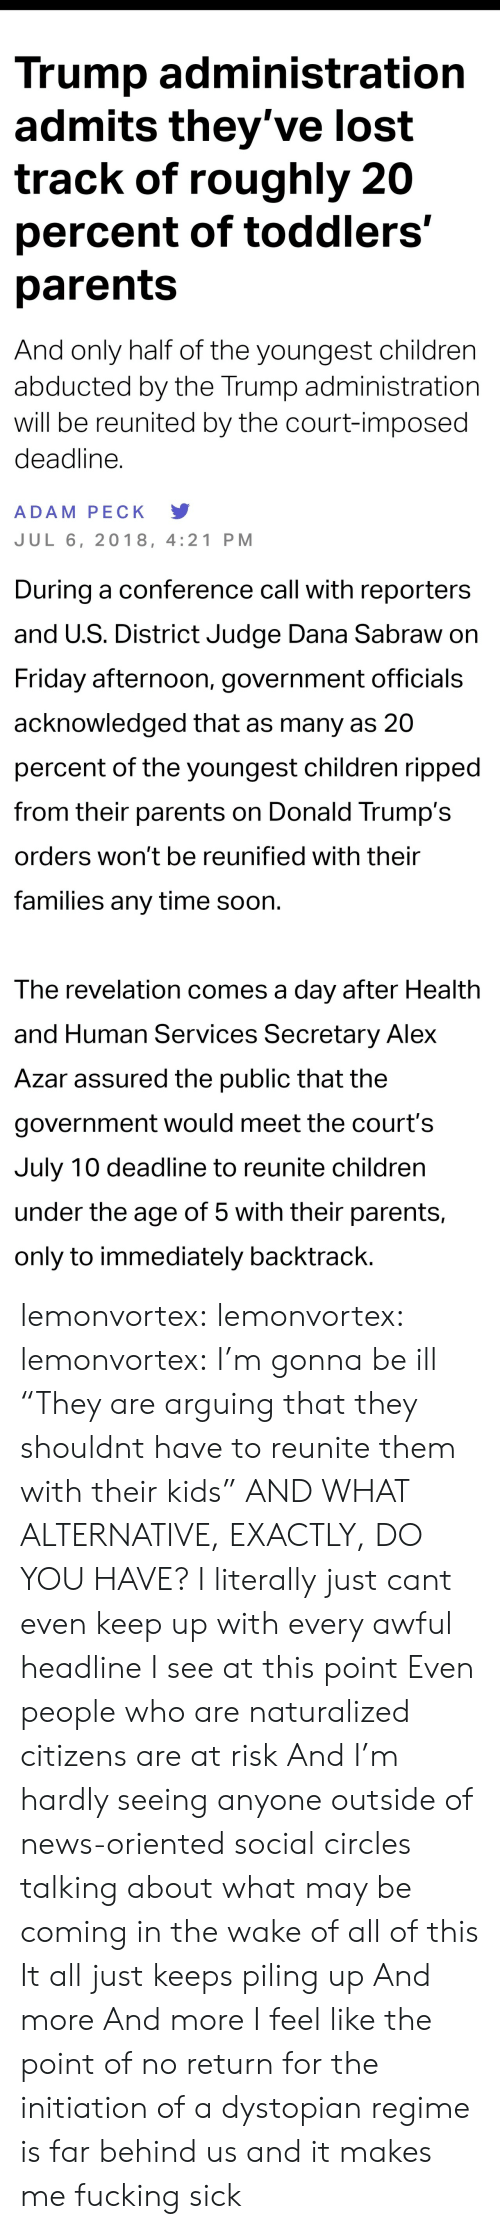 "Sessions: Trump administratiorn  admits they've lost  track of roughly 20  percent of toddlers'  parents  And only half of the youngest children  abducted by the Trump administration  will be reunited by the court-imposed  deadline.  ADAM PECK Y  JUL 6, 2018, 4:21 PM   During a conference call with reporters  and U.S. District Judge Dana Sabraw on  Friday afternoon, government officials  acknowledged that as many as 20  percent of the youngest children ripped  from their parents on Donald Trump's  orders won't be reunified with their  families any time soon  The revelation comes a day after Health  and Human Services Secretary Alex  Azar assured the public that the  government would meet the court's  July 10 deadline to reunite children  under the age of 5 with their parents,  only to immediately backtrack lemonvortex:  lemonvortex:   lemonvortex:  I'm gonna be ill   ""They are arguing that they shouldnt have to reunite them with their kids""  AND WHAT ALTERNATIVE, EXACTLY, DO YOU HAVE?   I literally just cant even keep up with every awful headline I see at this point  Even people who are naturalized citizens are at risk  And I'm hardly seeing anyone outside of news-oriented social circles talking about what may be coming in the wake of all of this  It all just keeps piling up  And more  And more  I feel like the point of no return for the initiation of a dystopian regime is far behind us and it makes me fucking sick"